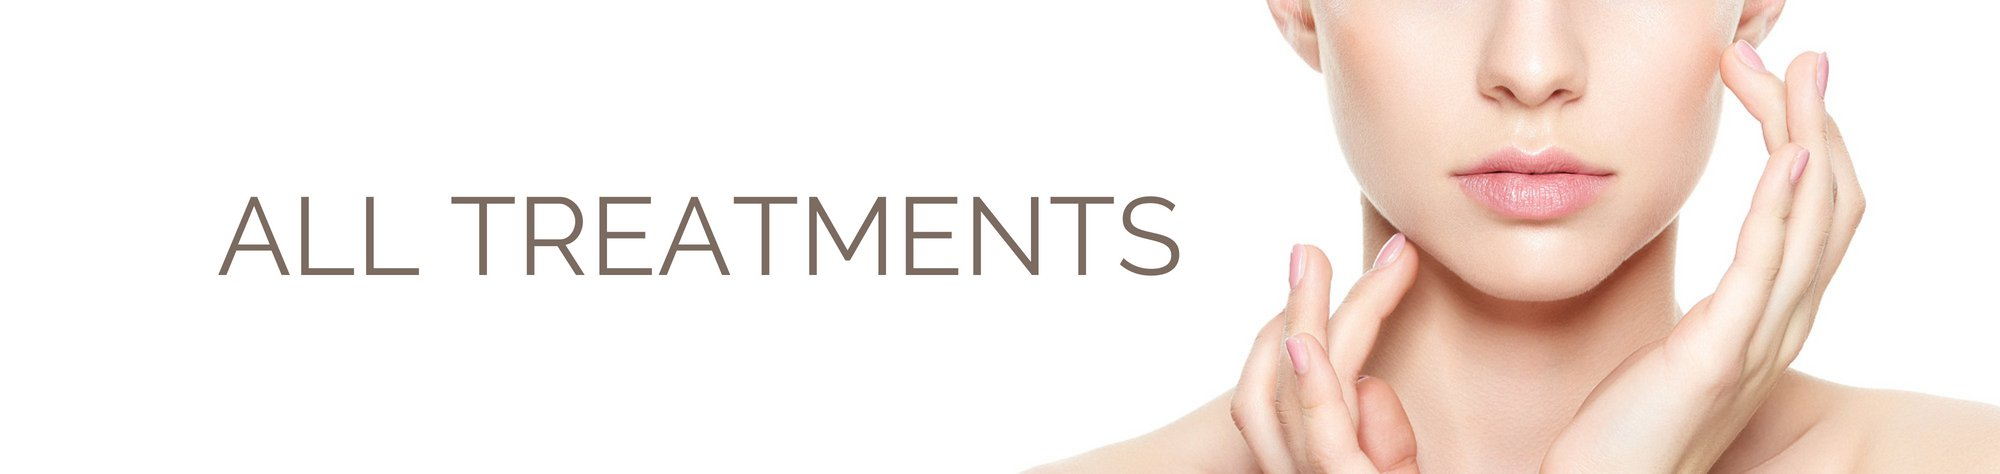 All Treatments Banner